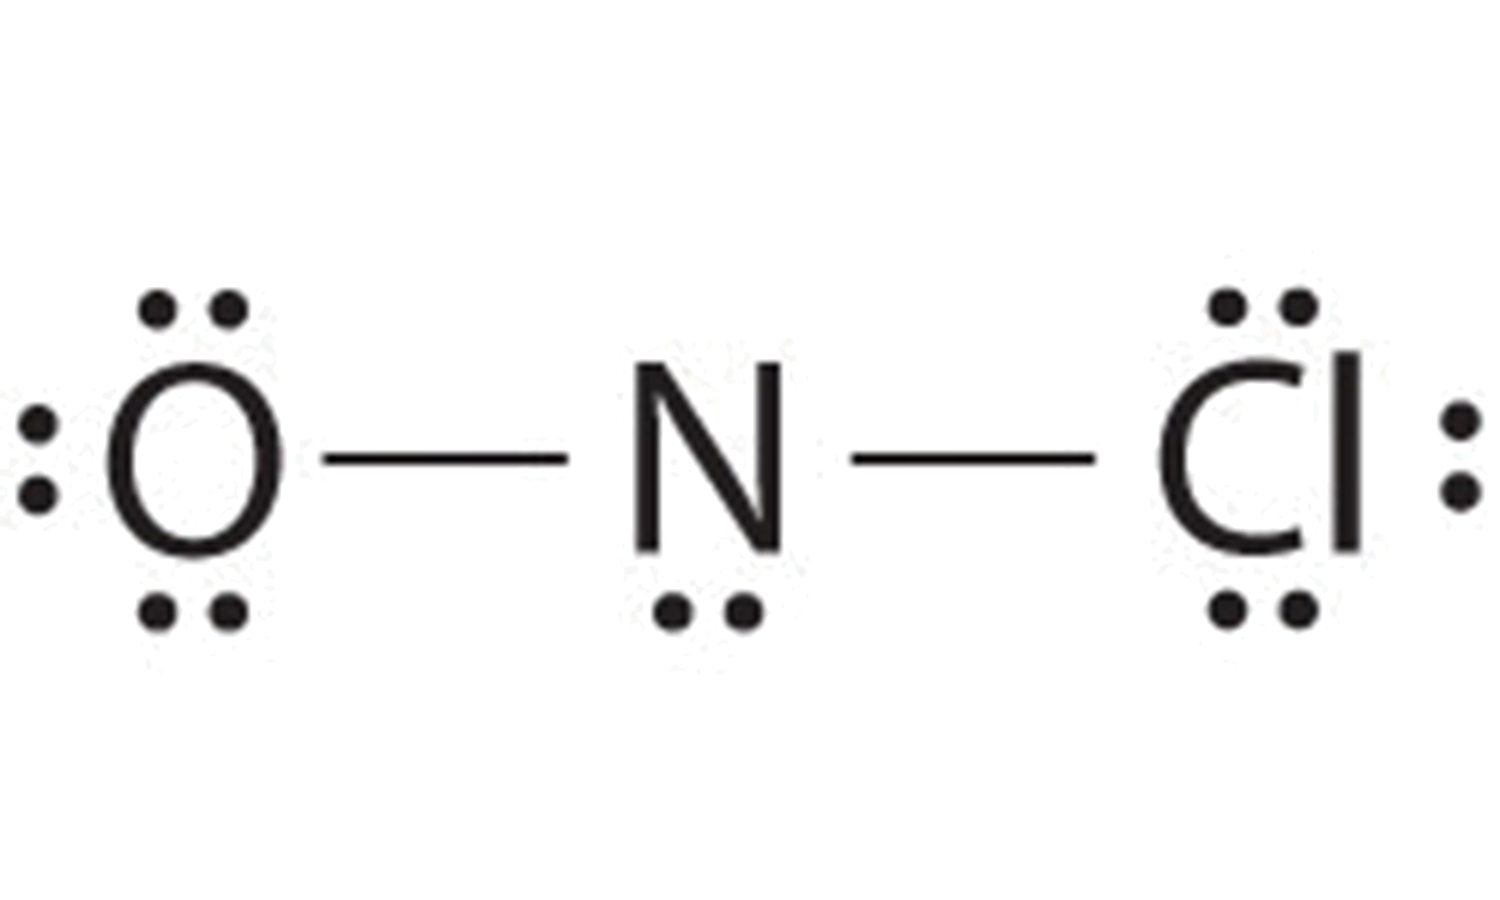 because this lewis structure has only 6 electrons around the central  nitrogen, a lone pair of electrons on a terminal atom must be used to form  a bonding